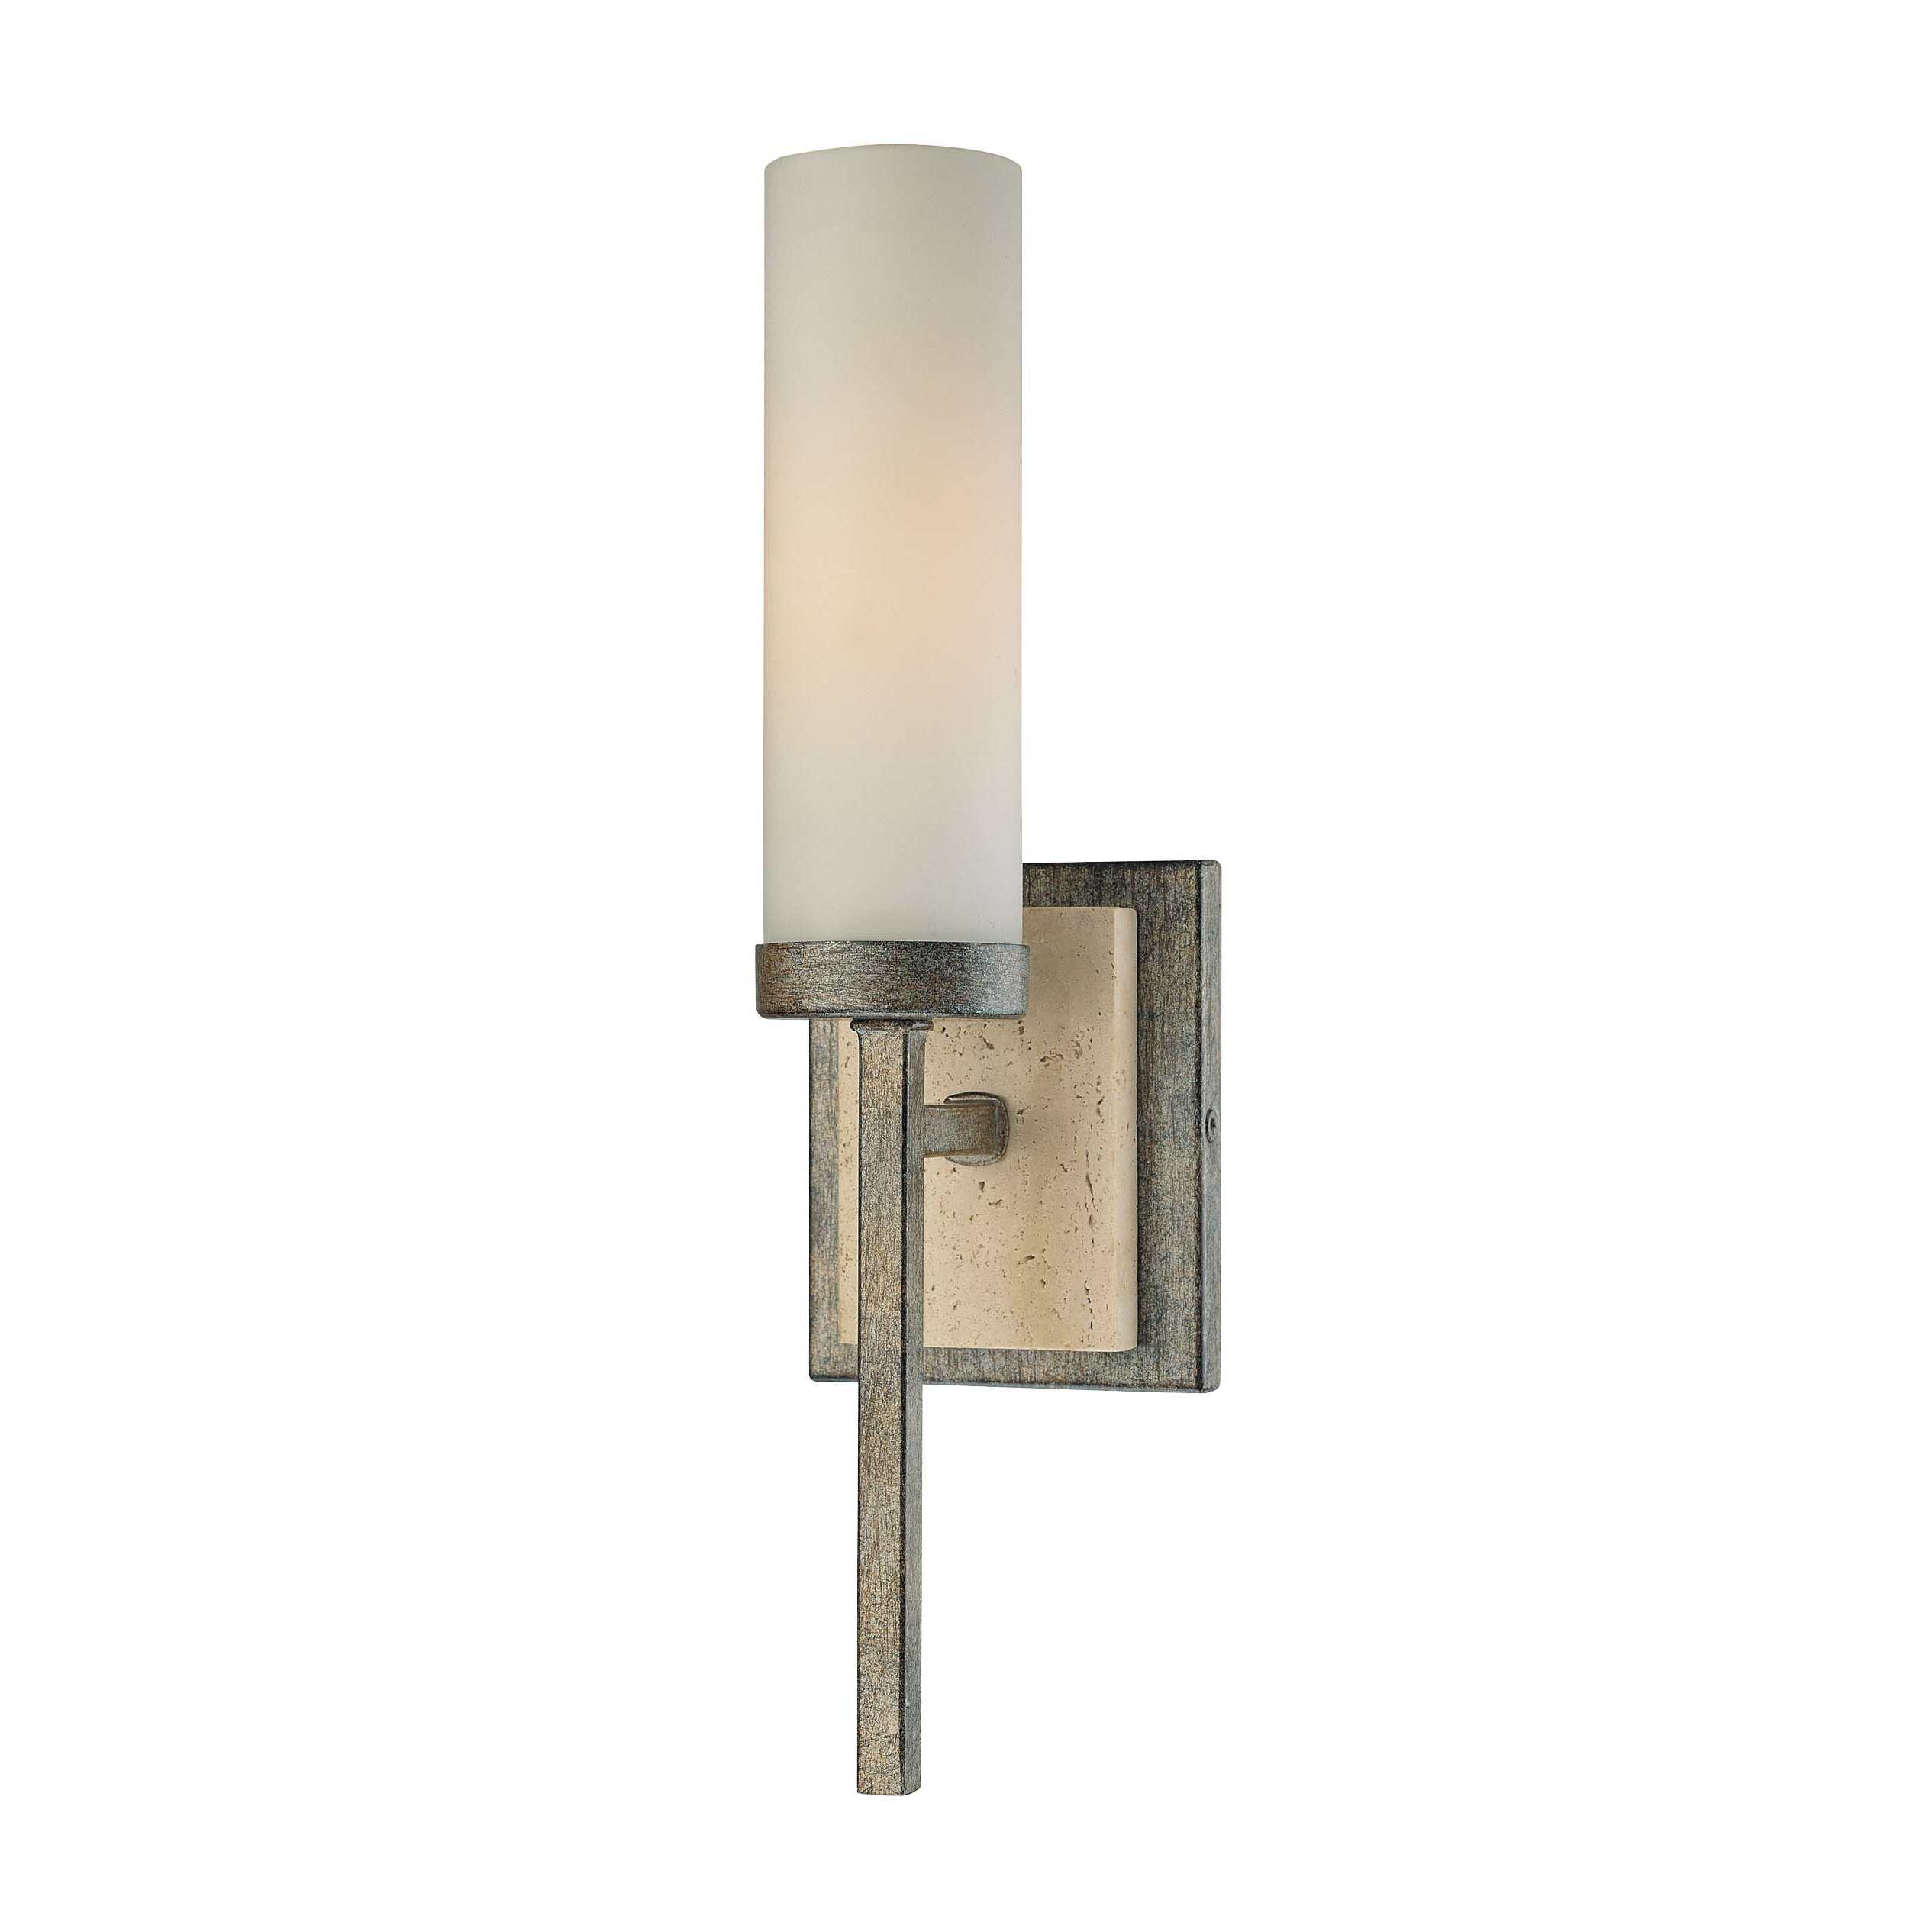 Wall Sconces At Wayfair : Minka Lavery 1 Light Wall Sconce & Reviews Wayfair